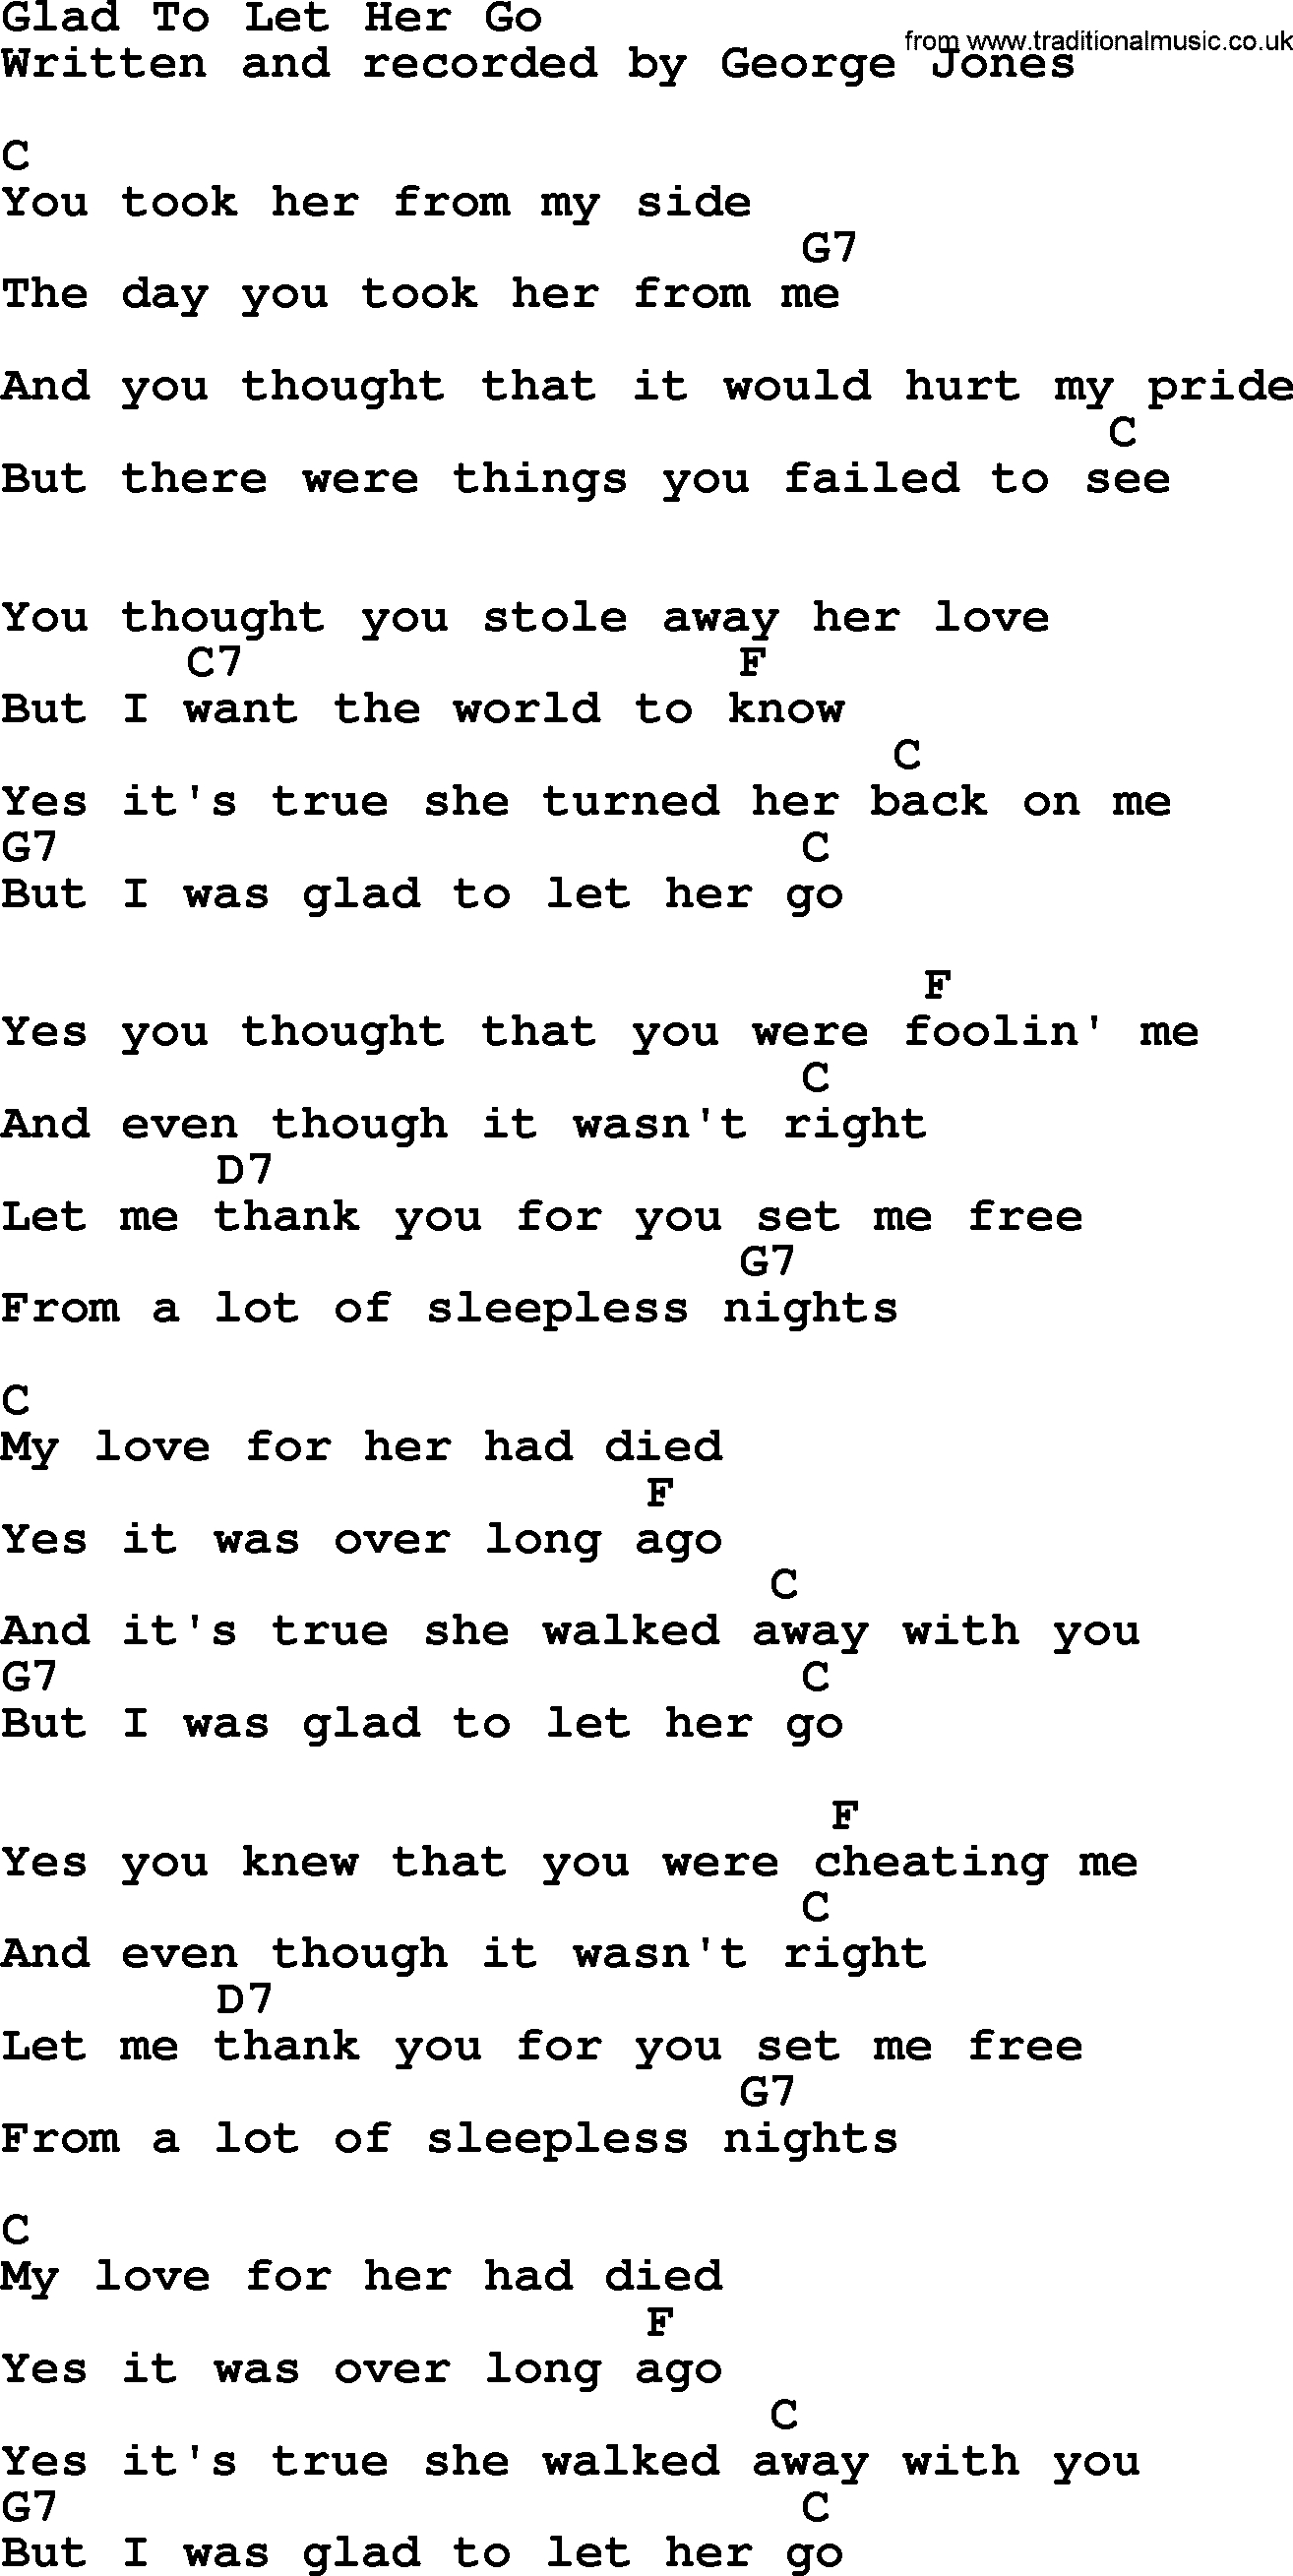 Let Her Go Chords Glad To Let Her Go George Jones Counrty Song Lyrics And Chords